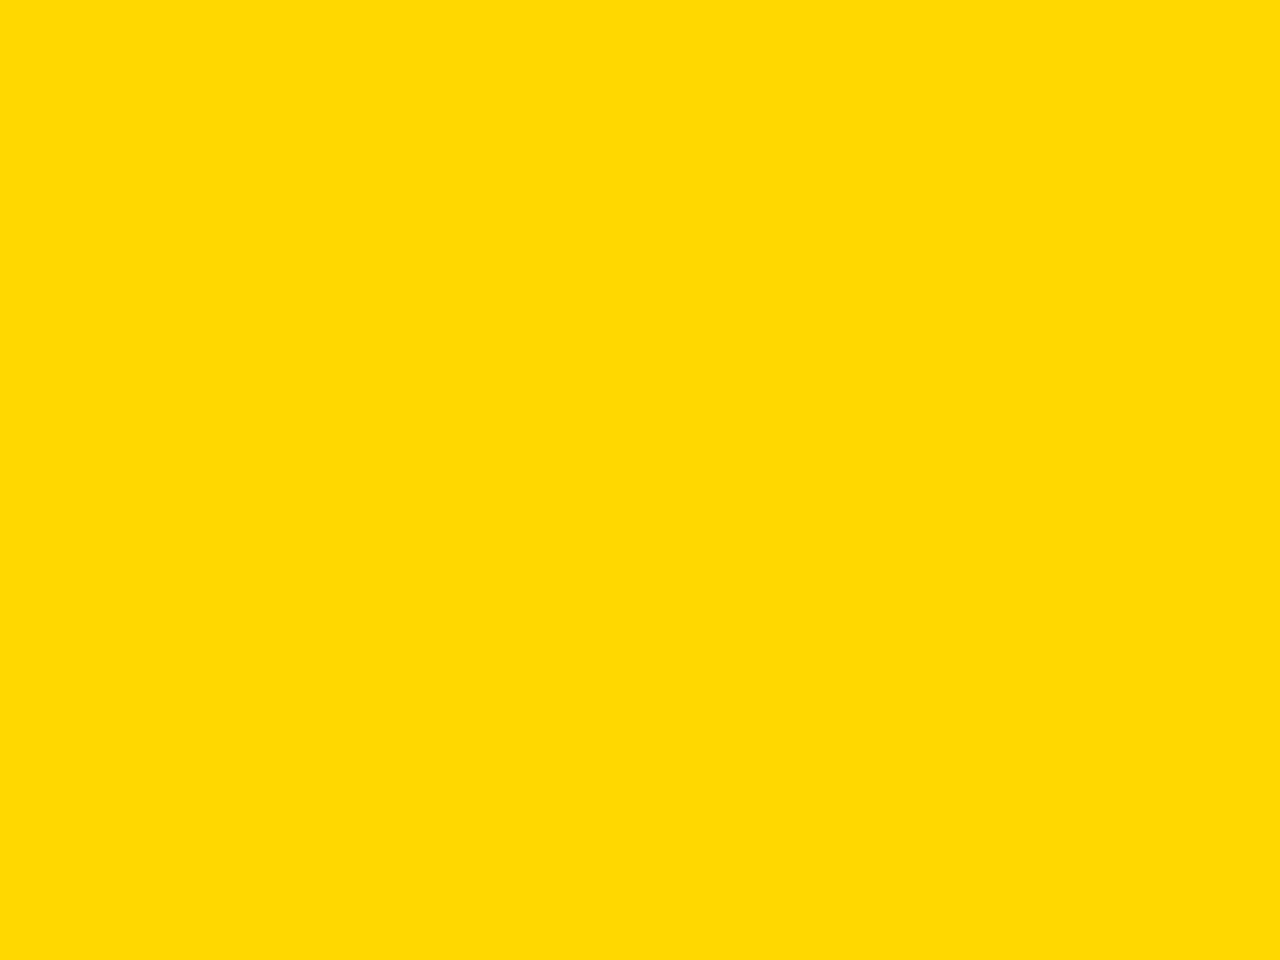 1280x960 School Bus Yellow Solid Color Background